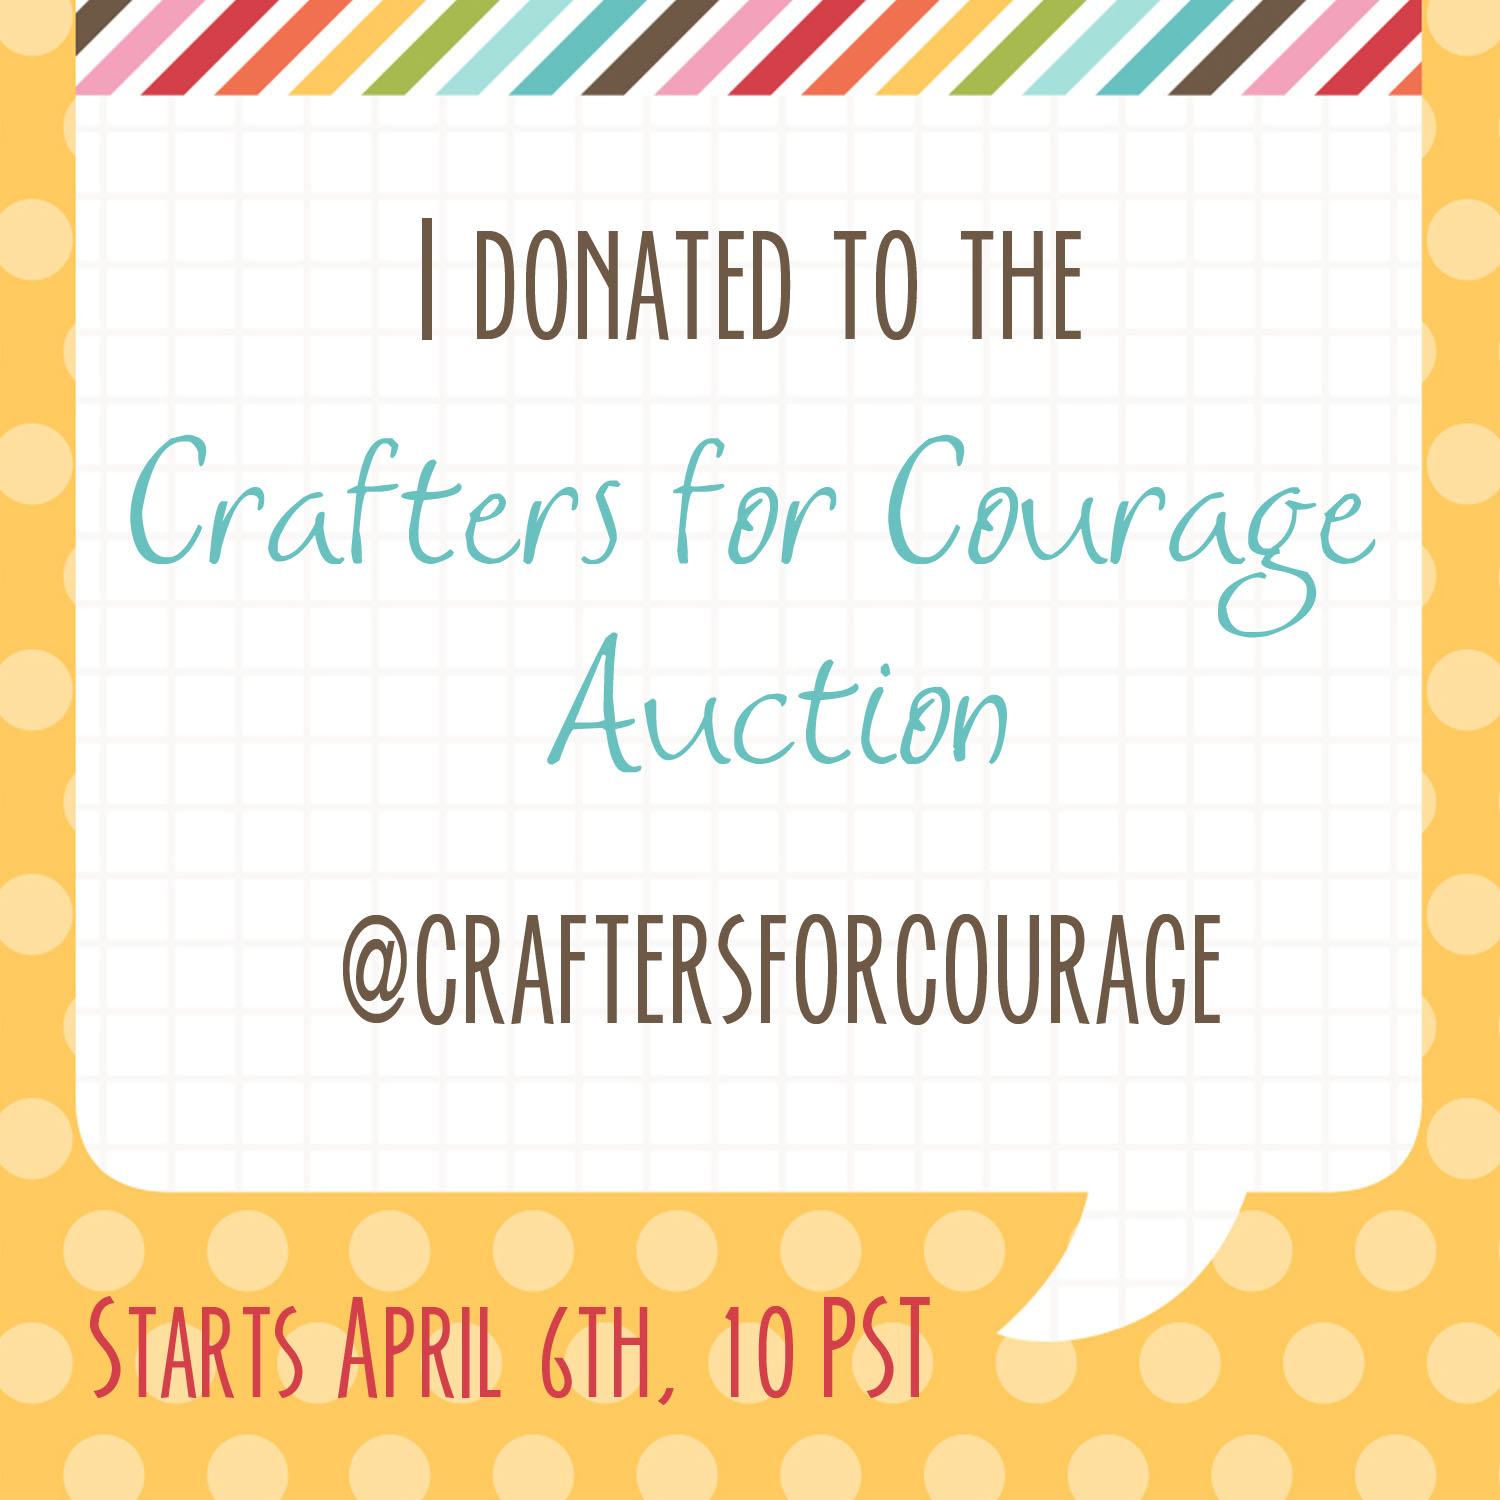 Crafters for Courage | MadeByJaime